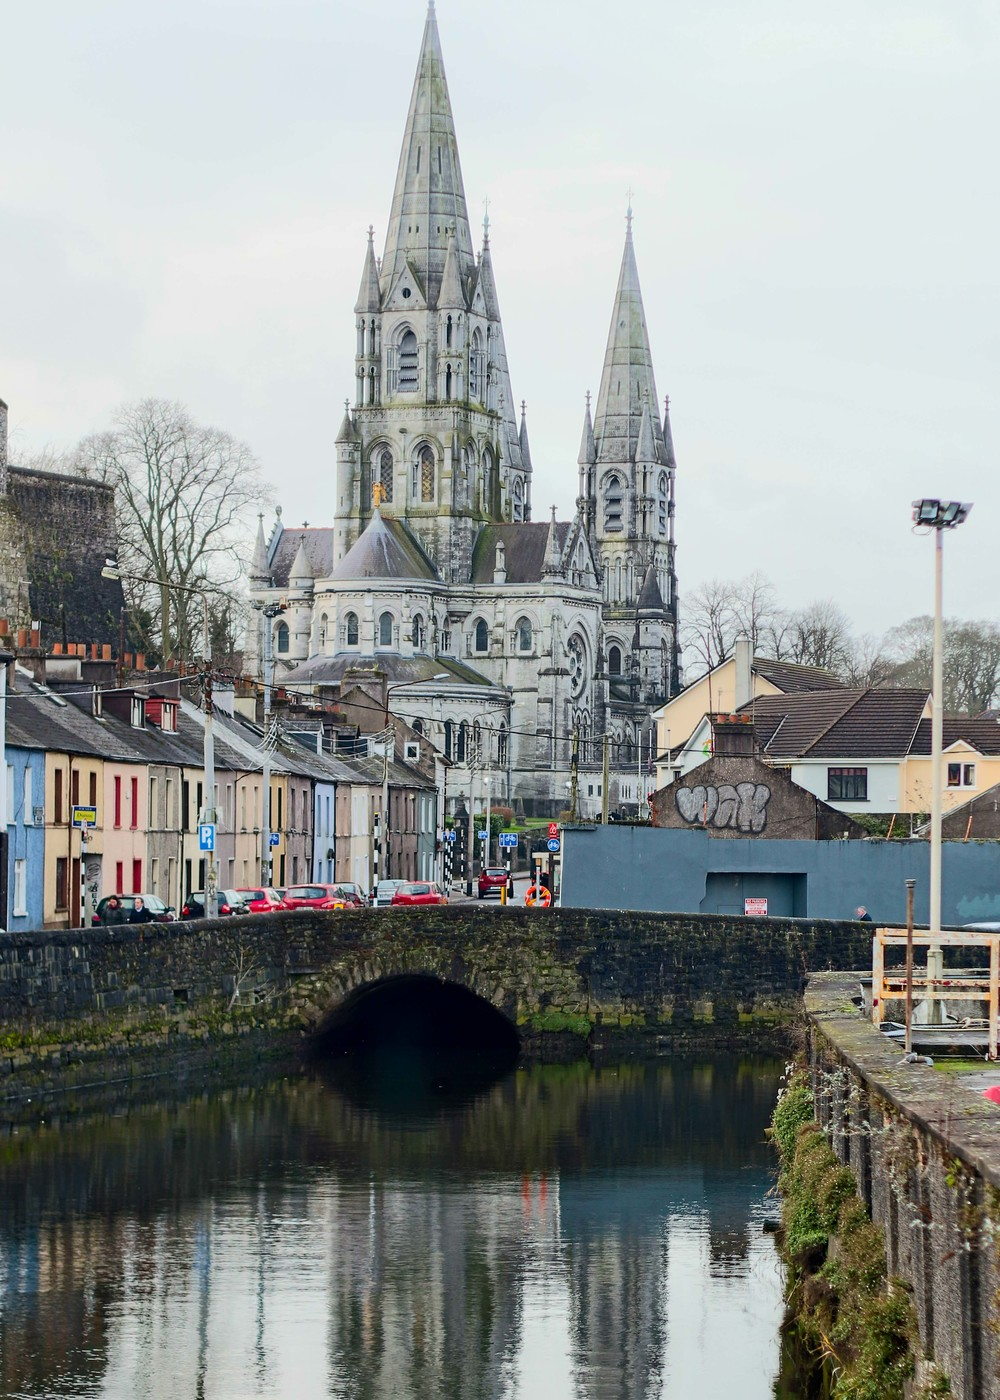 St. Finn Barre's Cathedral in Cork with the River Lee